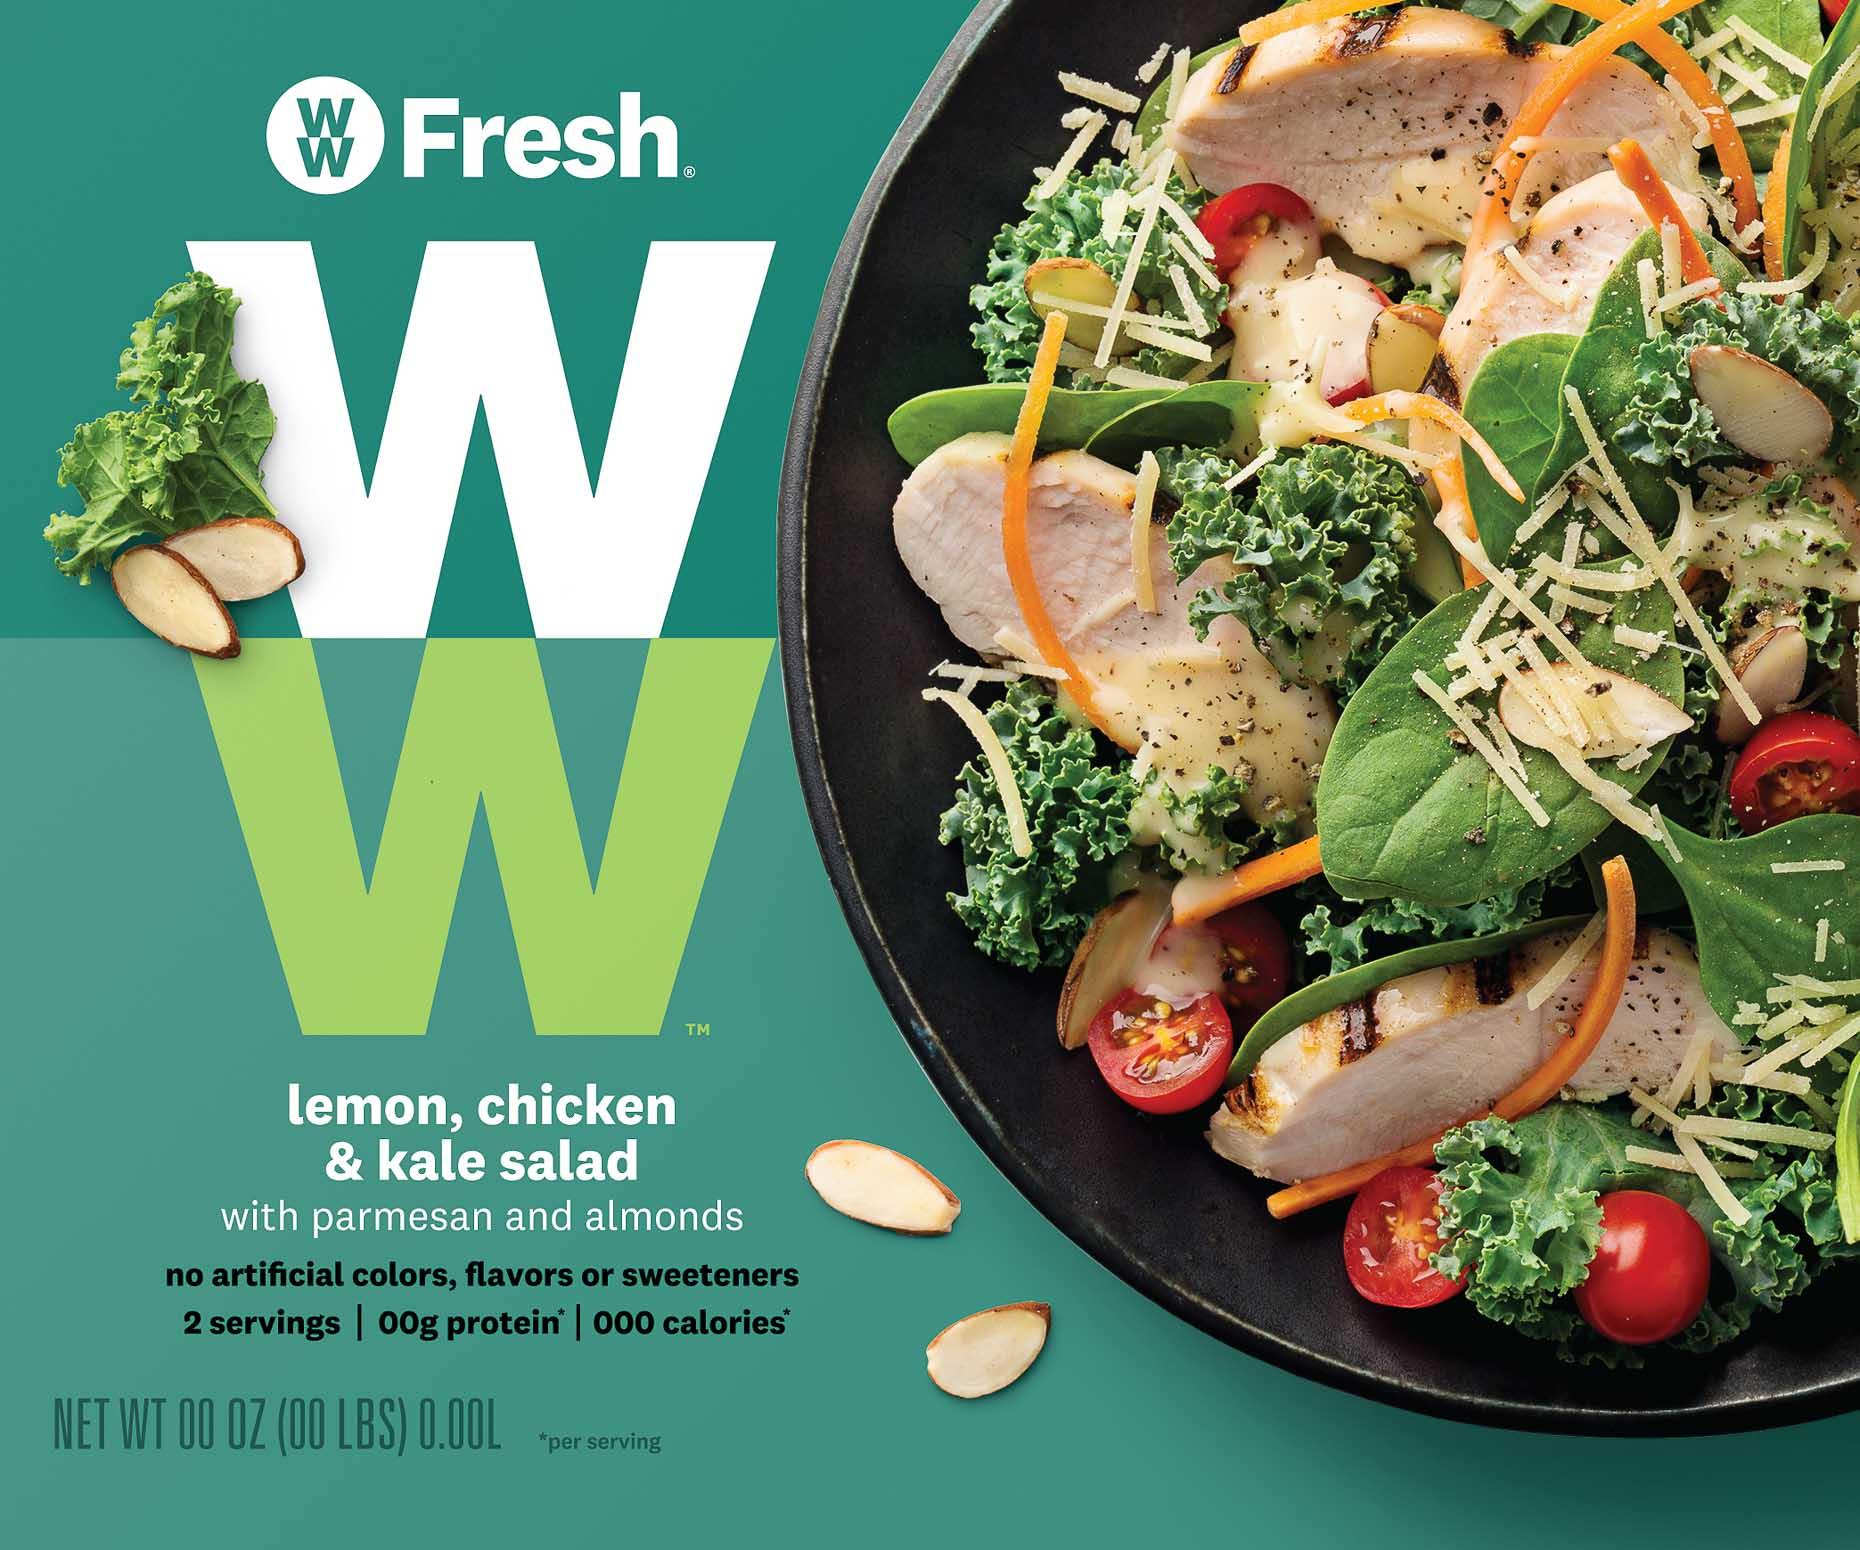 180822_WWFresh_LemonCKKaleSalad_INSERT_OL